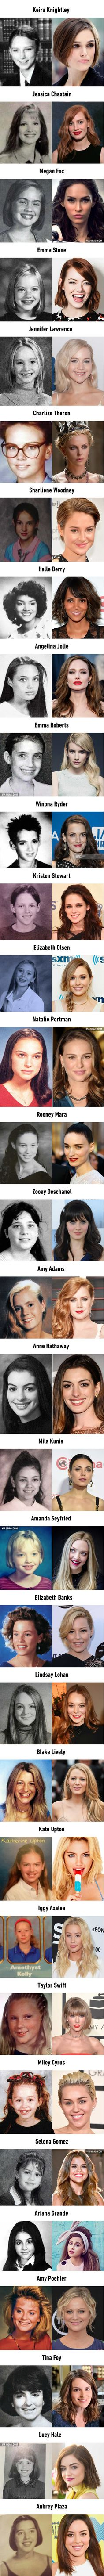 33 Female Celebrities' Yearbook Photos